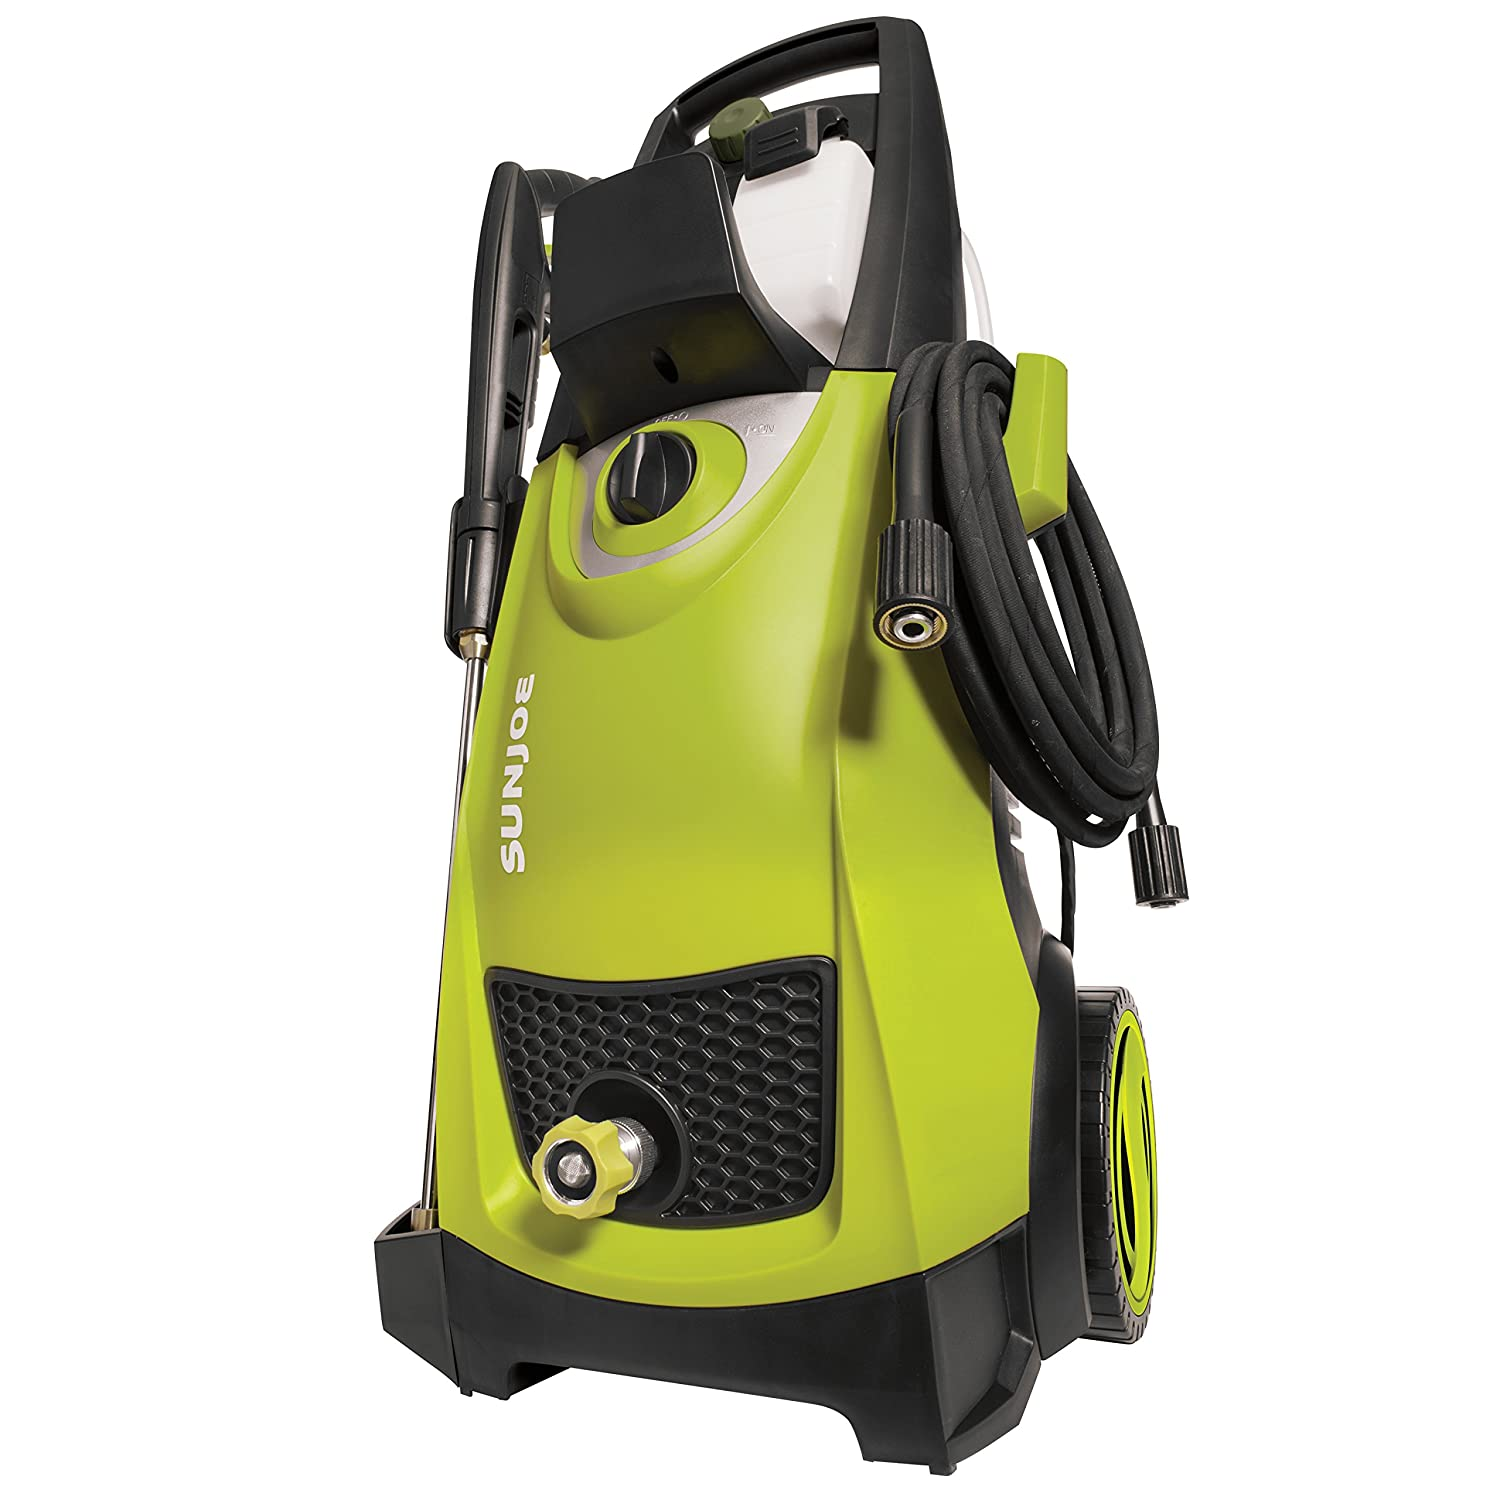 The Best Electric Pressure Washers For Your Garden: Reviews & Buying Guide 1